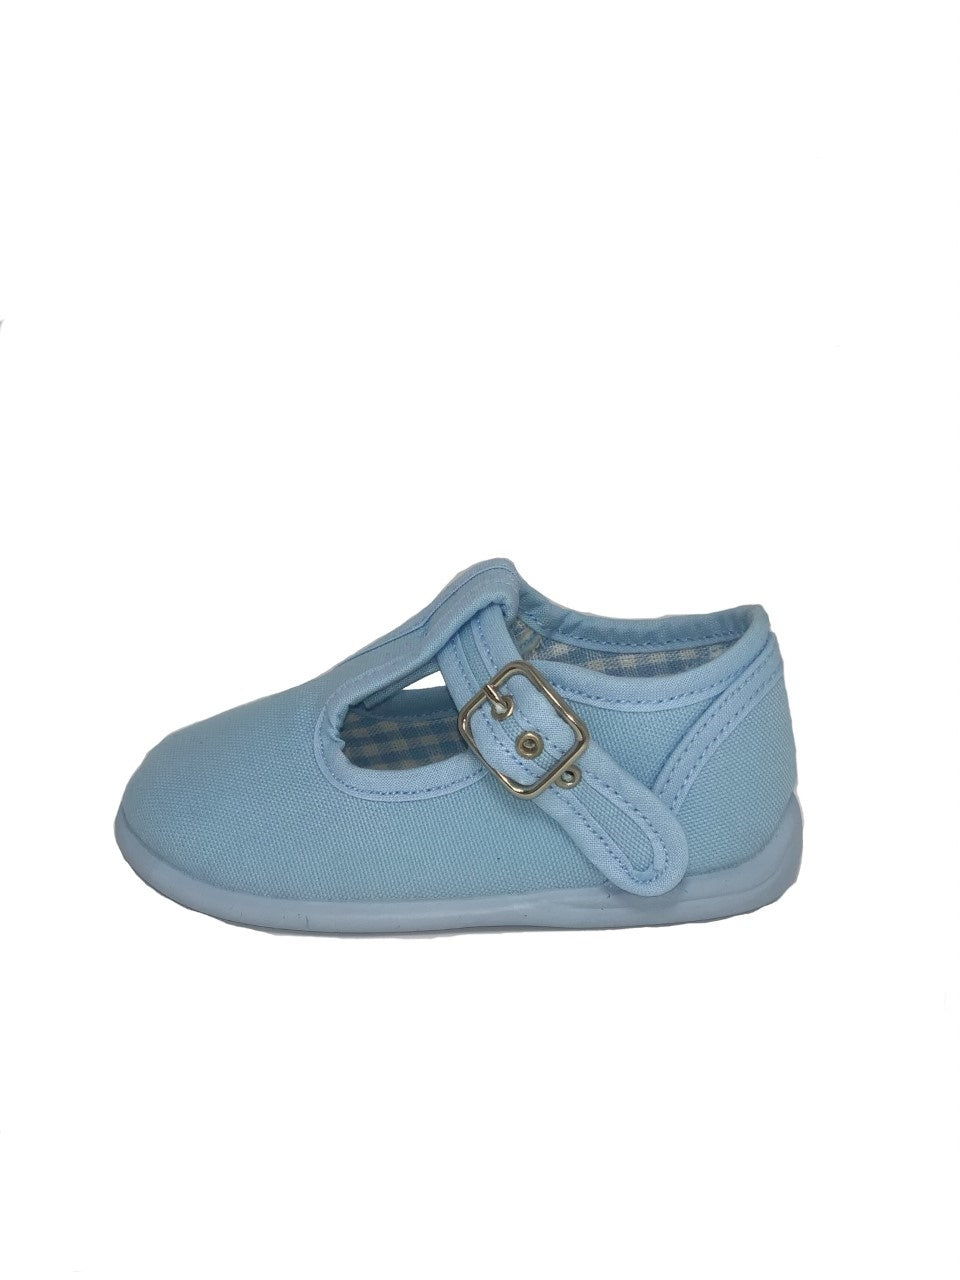 Gepo Baby Blue Canvas Shoe